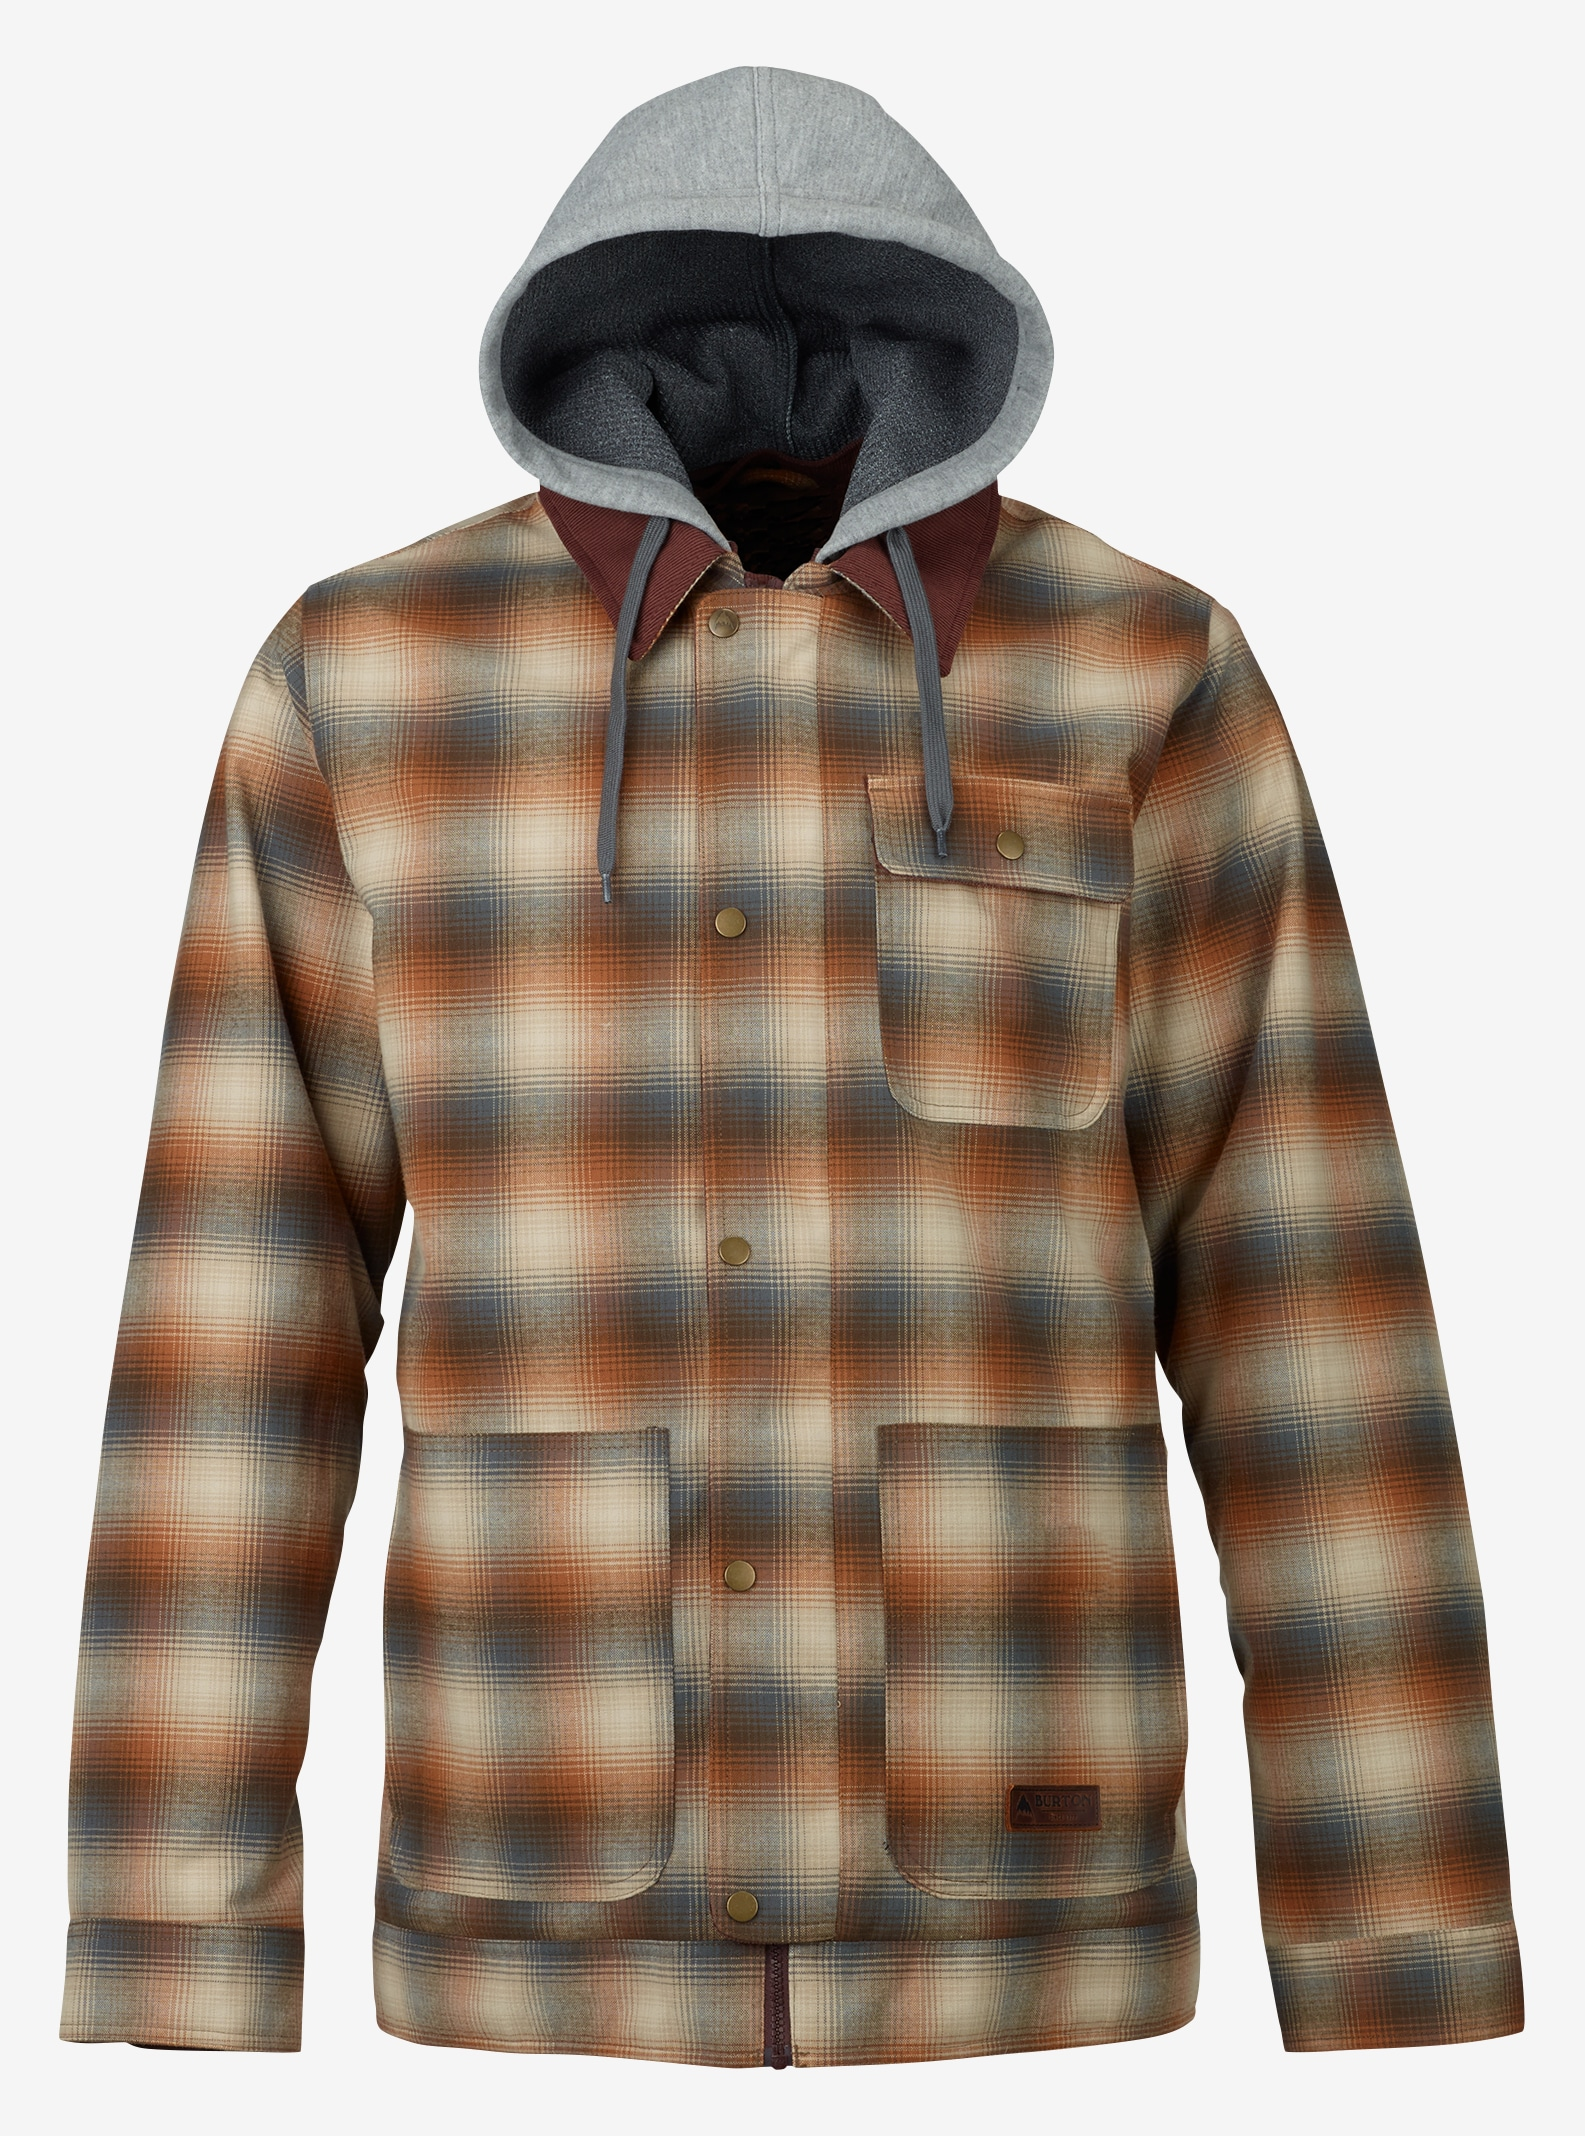 Men's Burton Dunmore Jacket shown in Shep Plaid